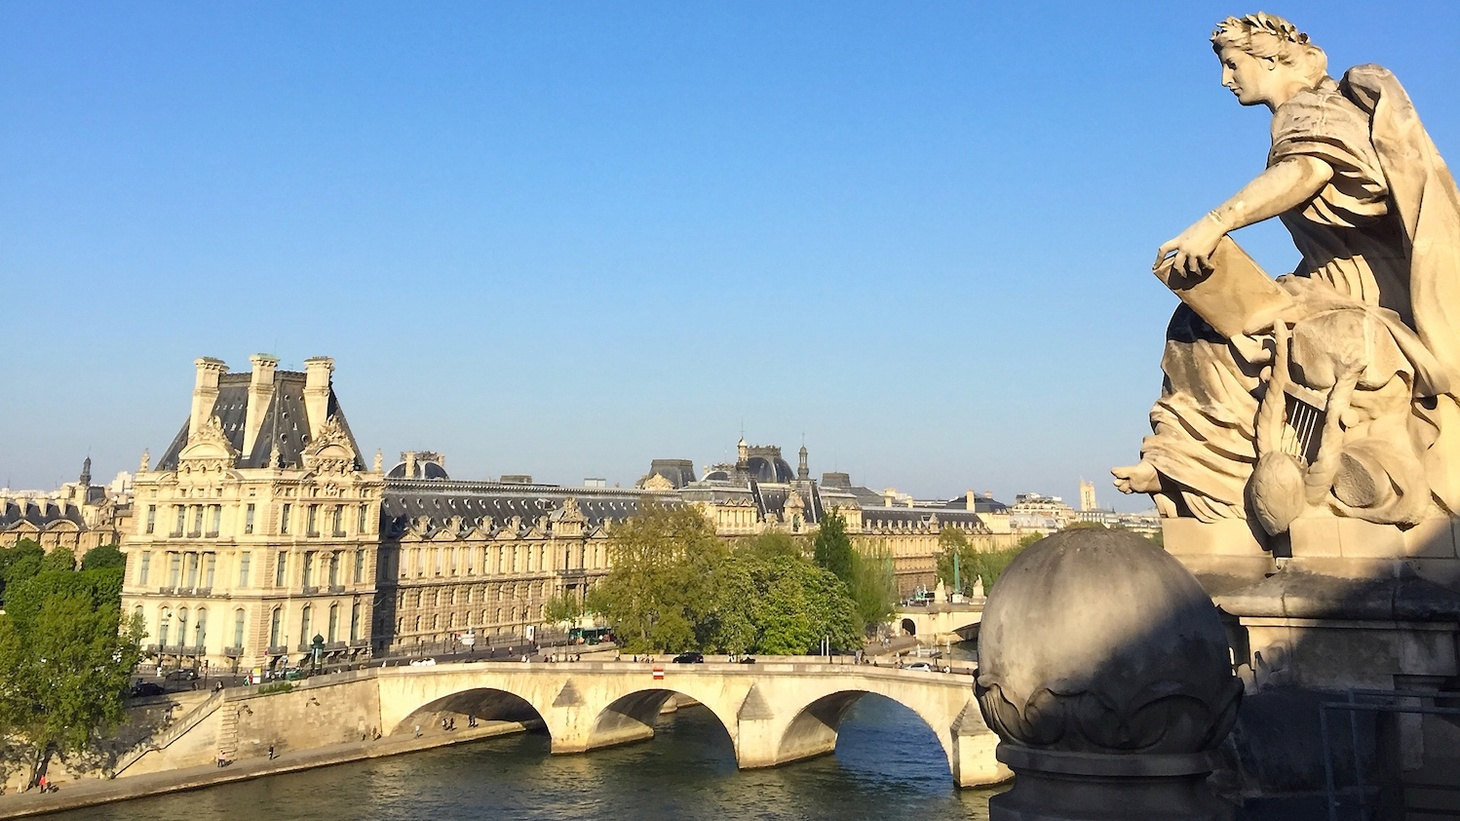 Edward Goldman shares his recent adventures in the Paris Region of France.